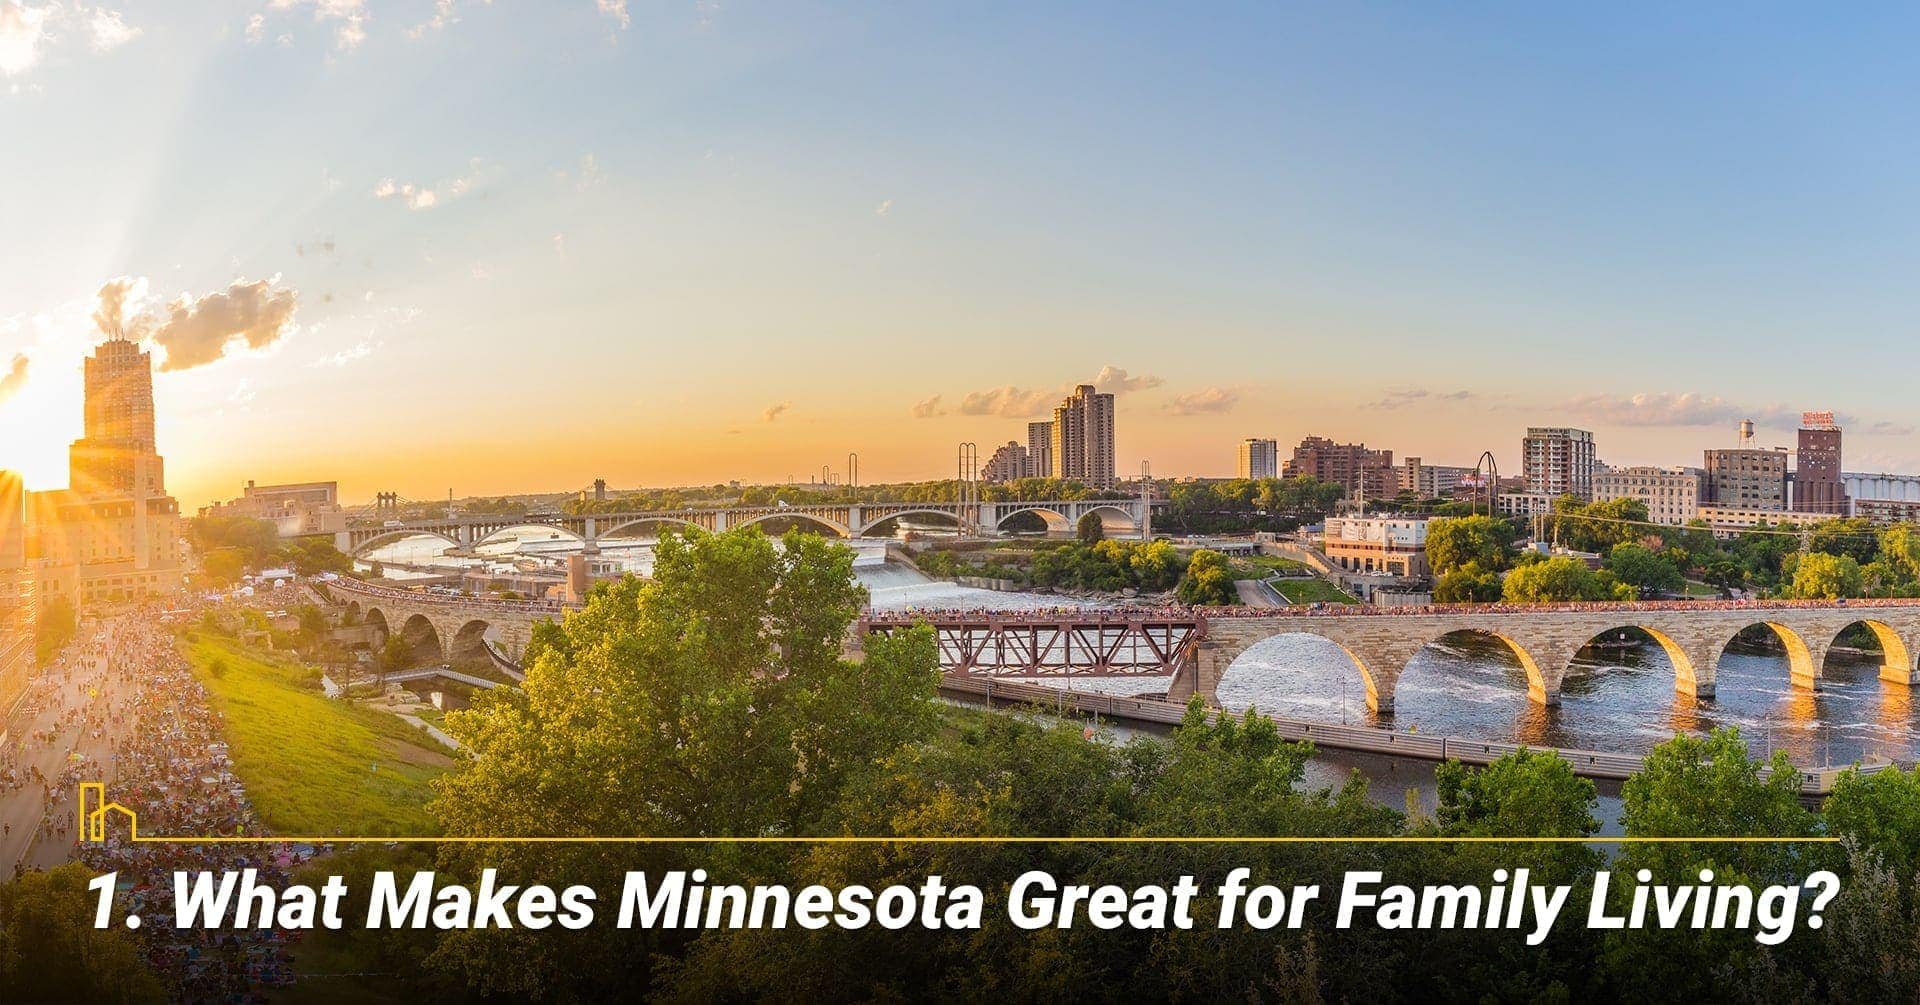 What Makes Minnesota Great for Family Living?